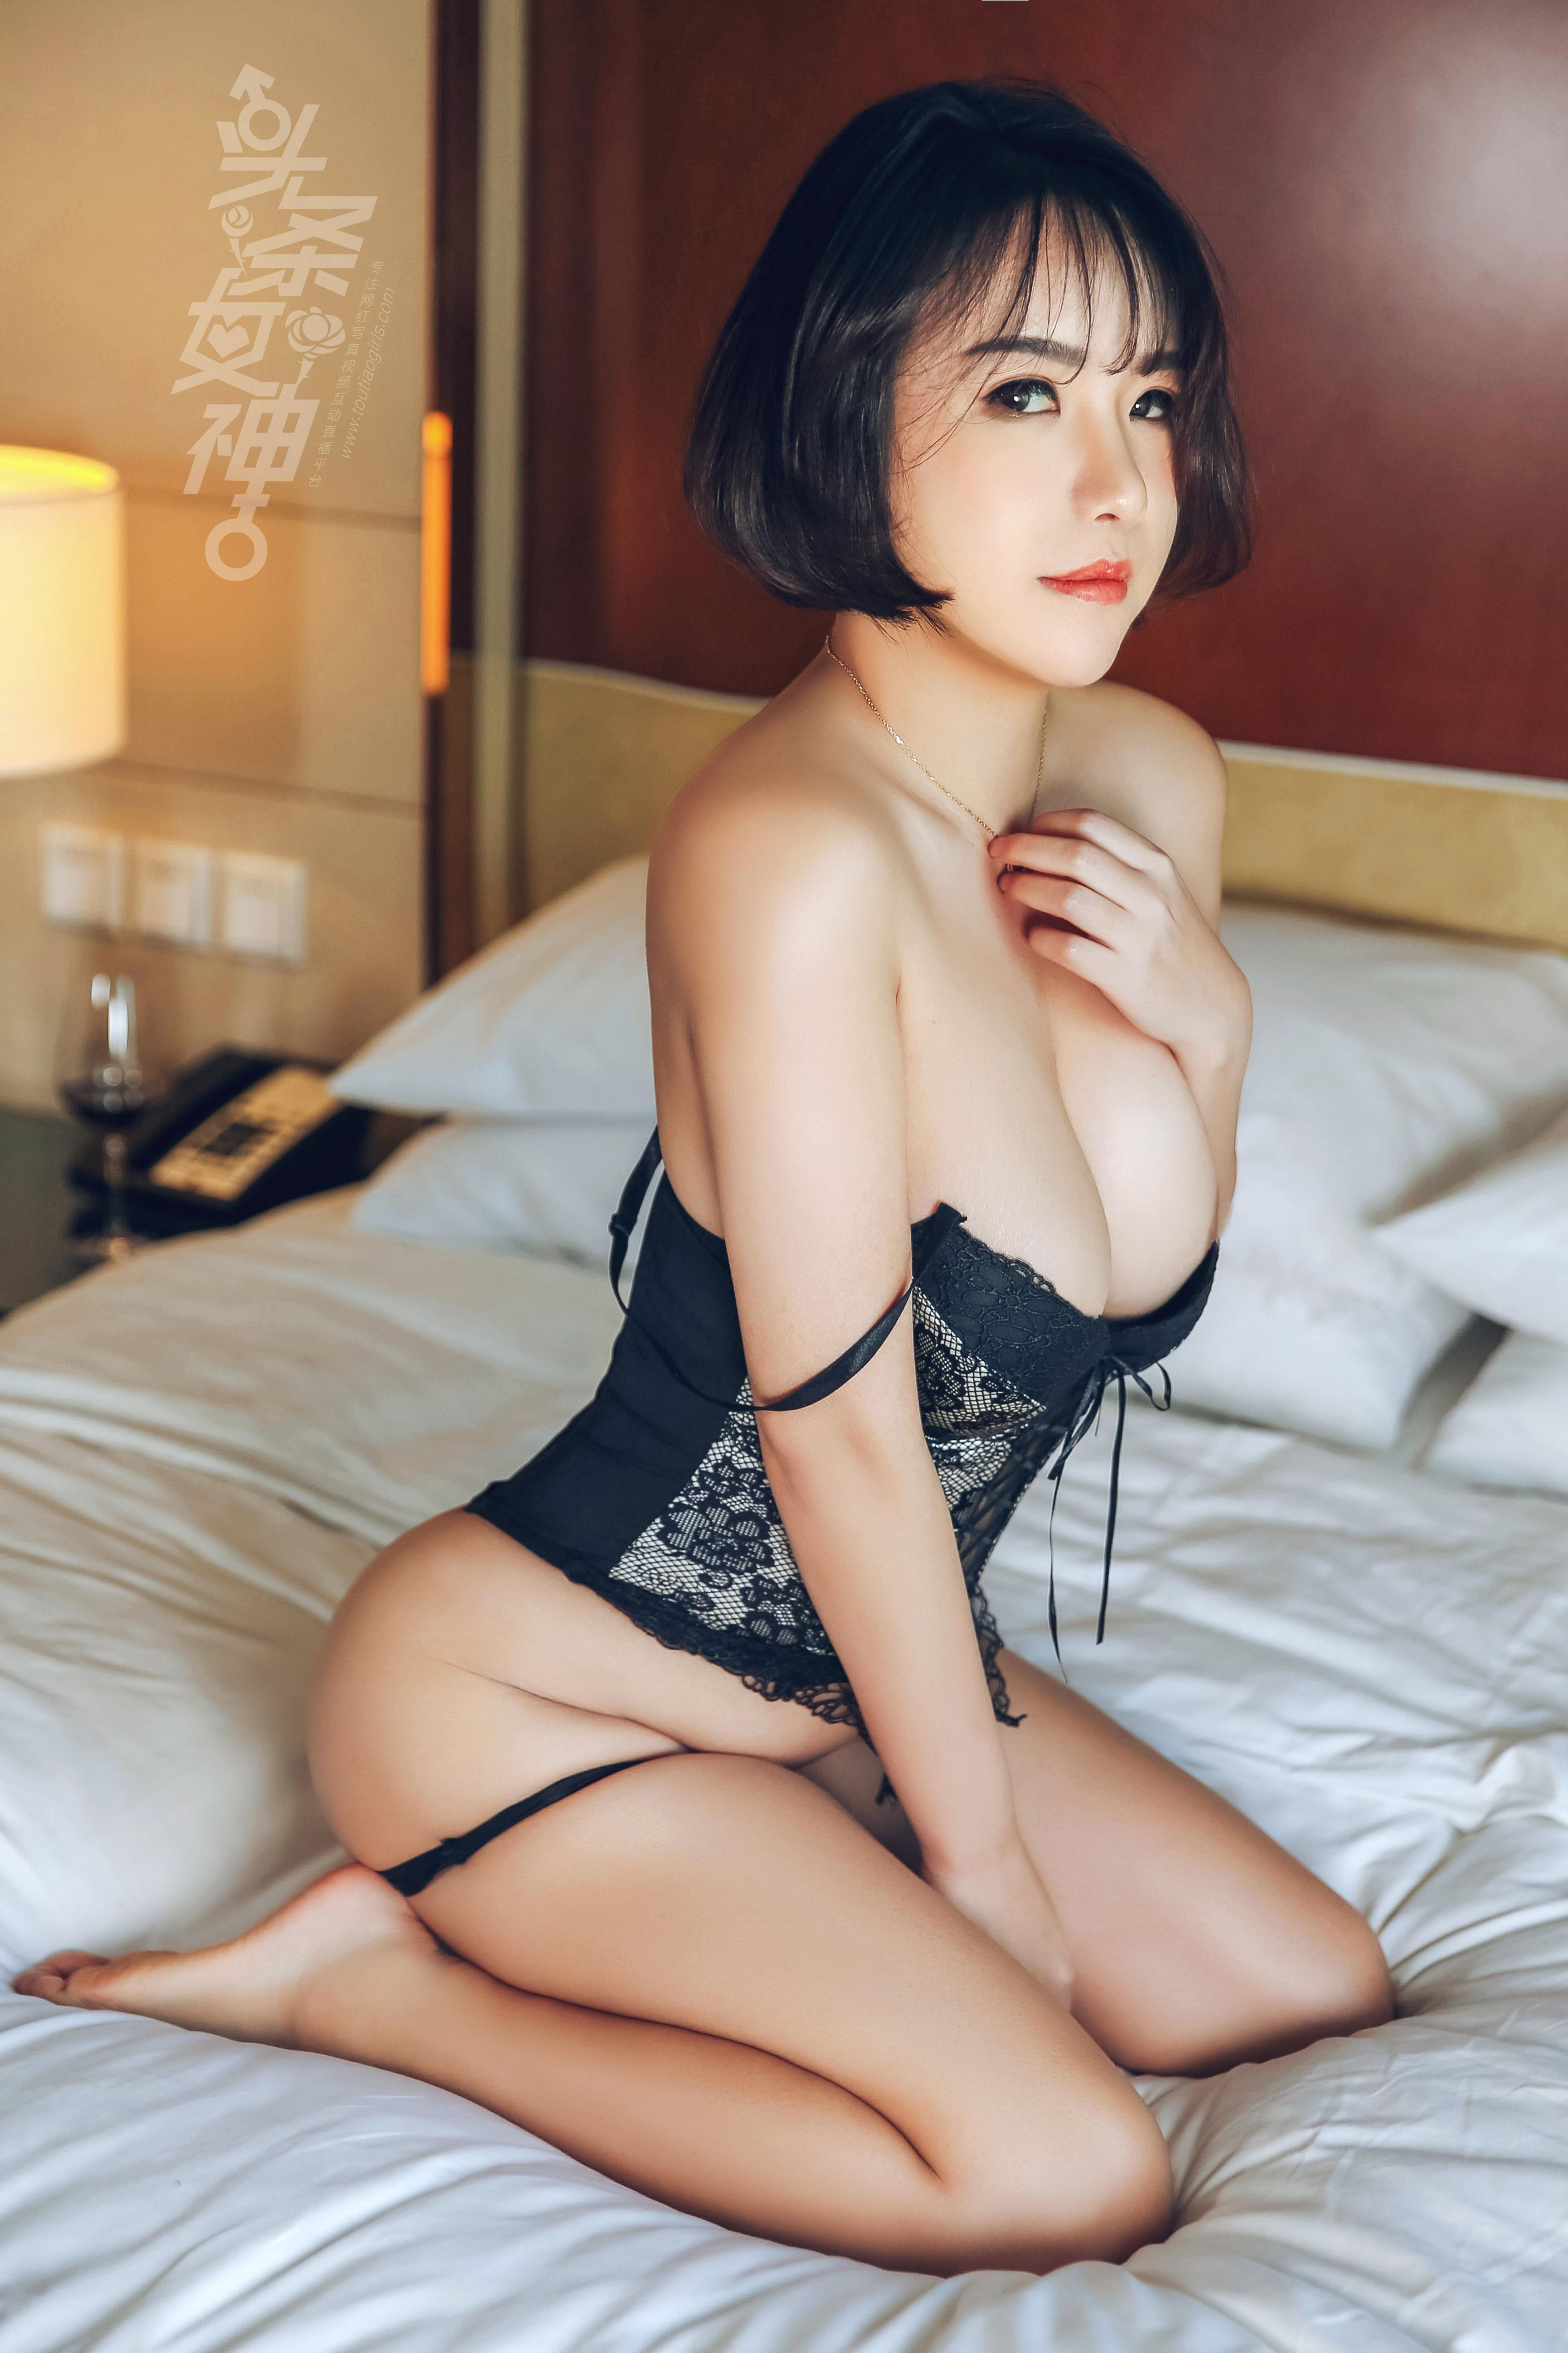 hot Chinese women in sexy posture